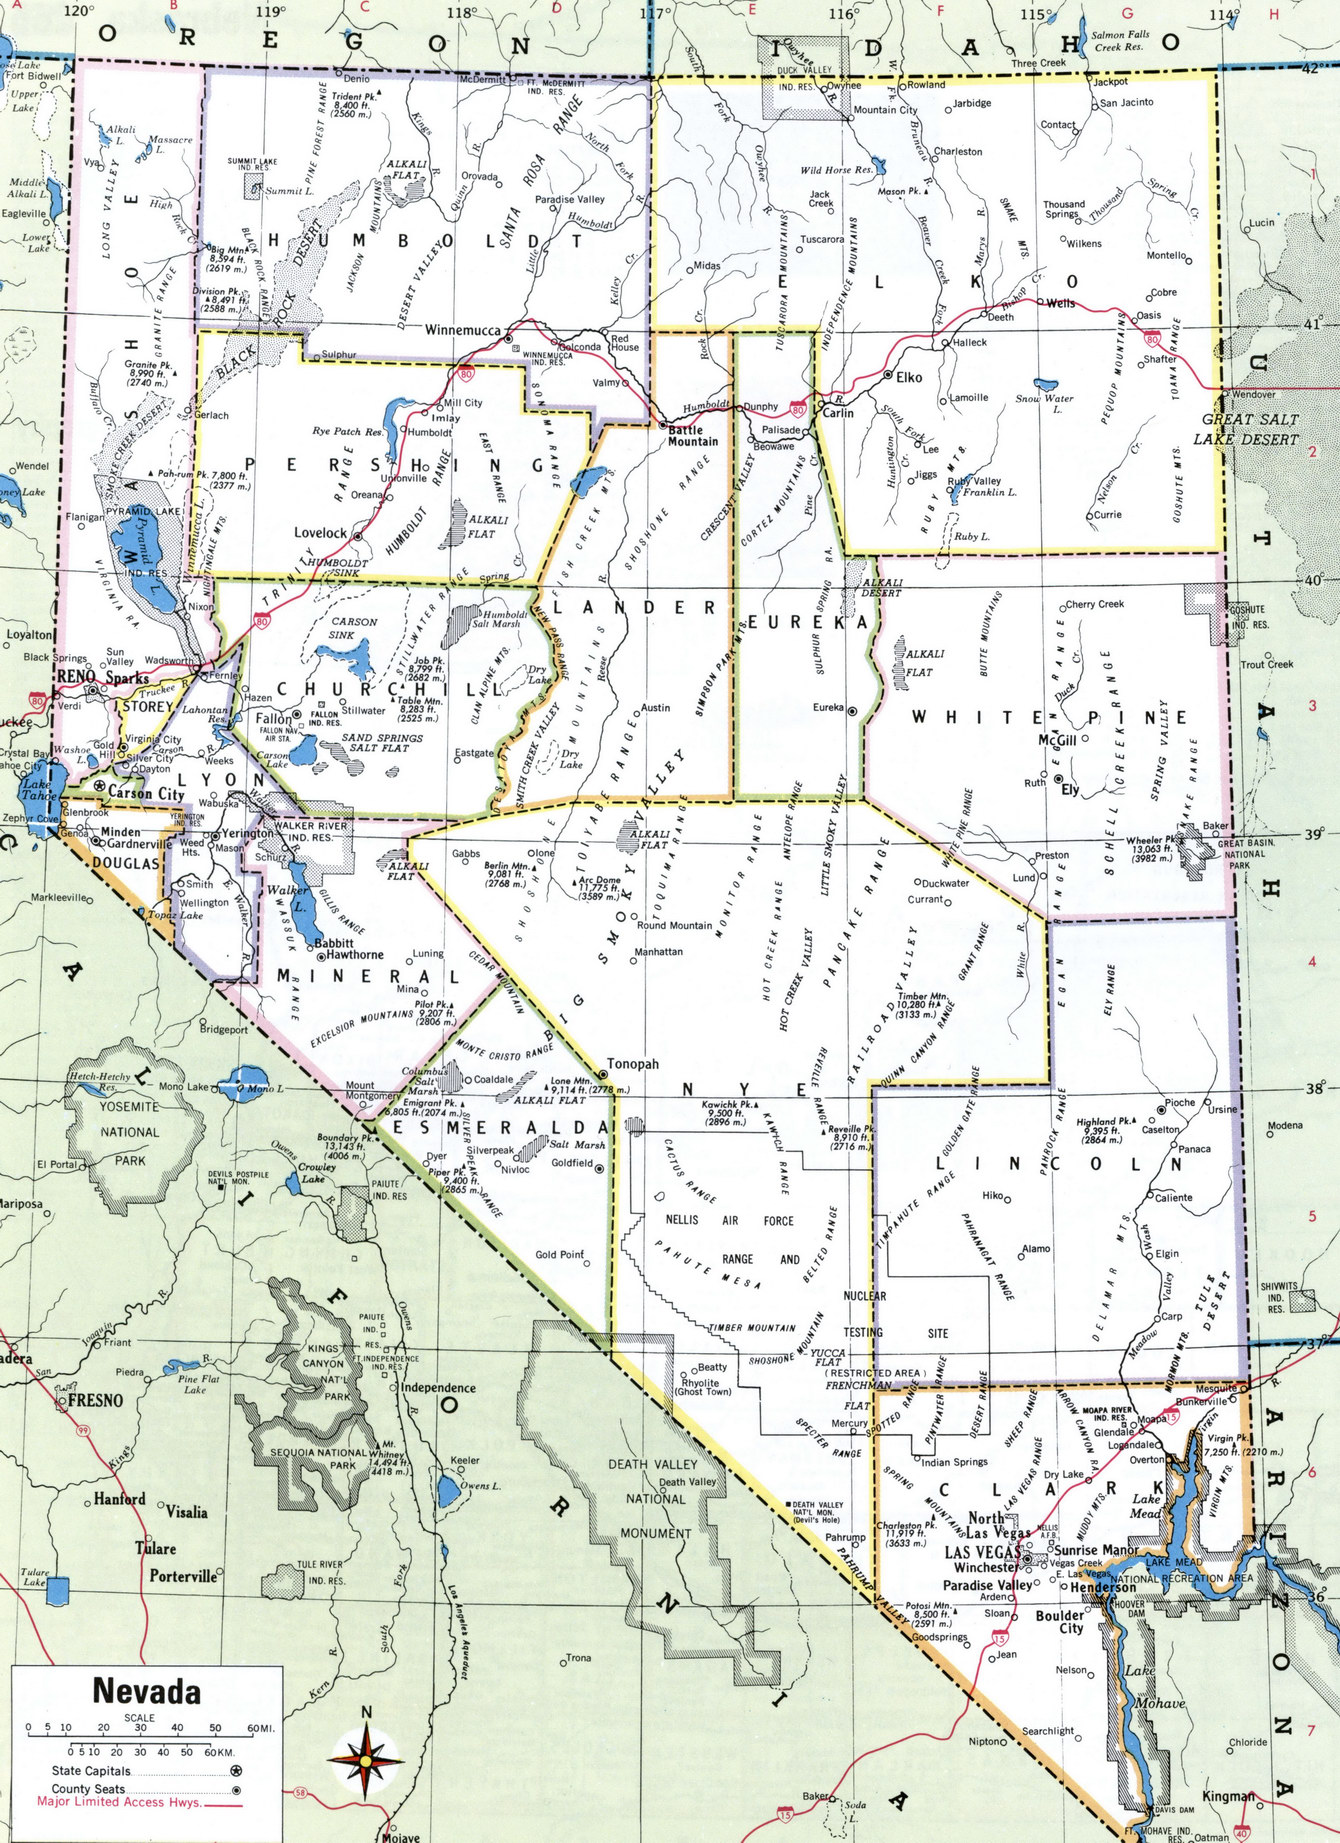 Nevada county map